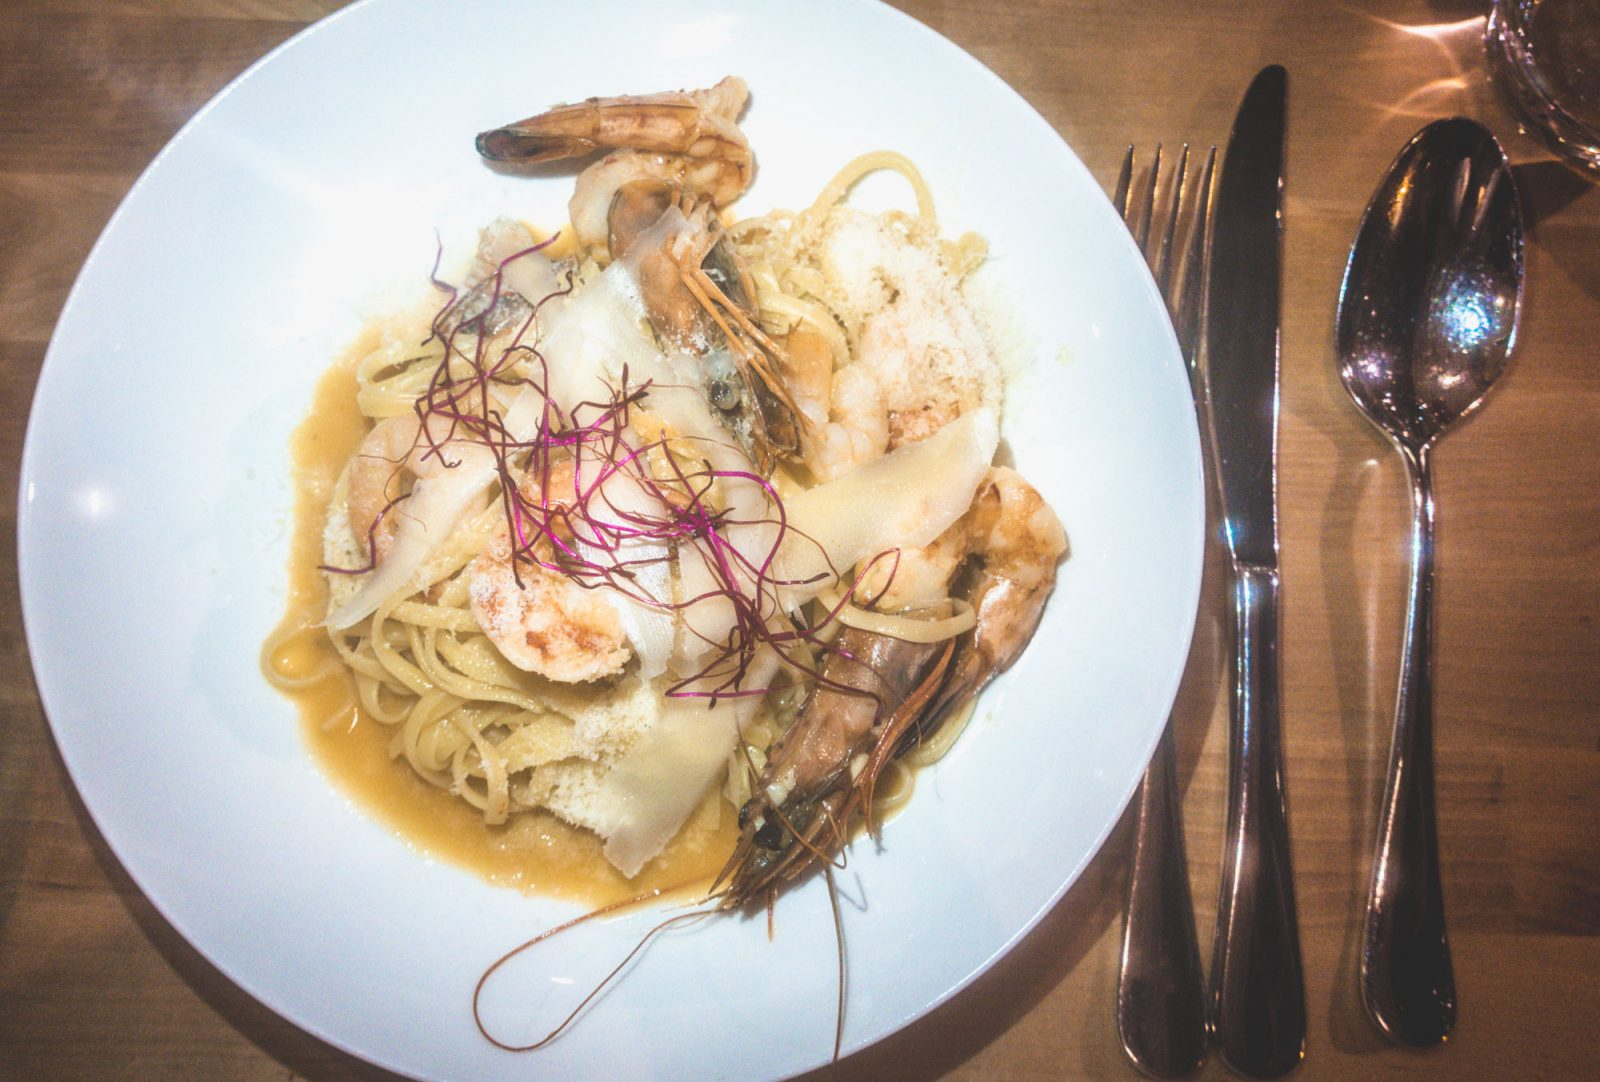 Things to do in Tallinn: Seafood pasta at Enotecca Lucca